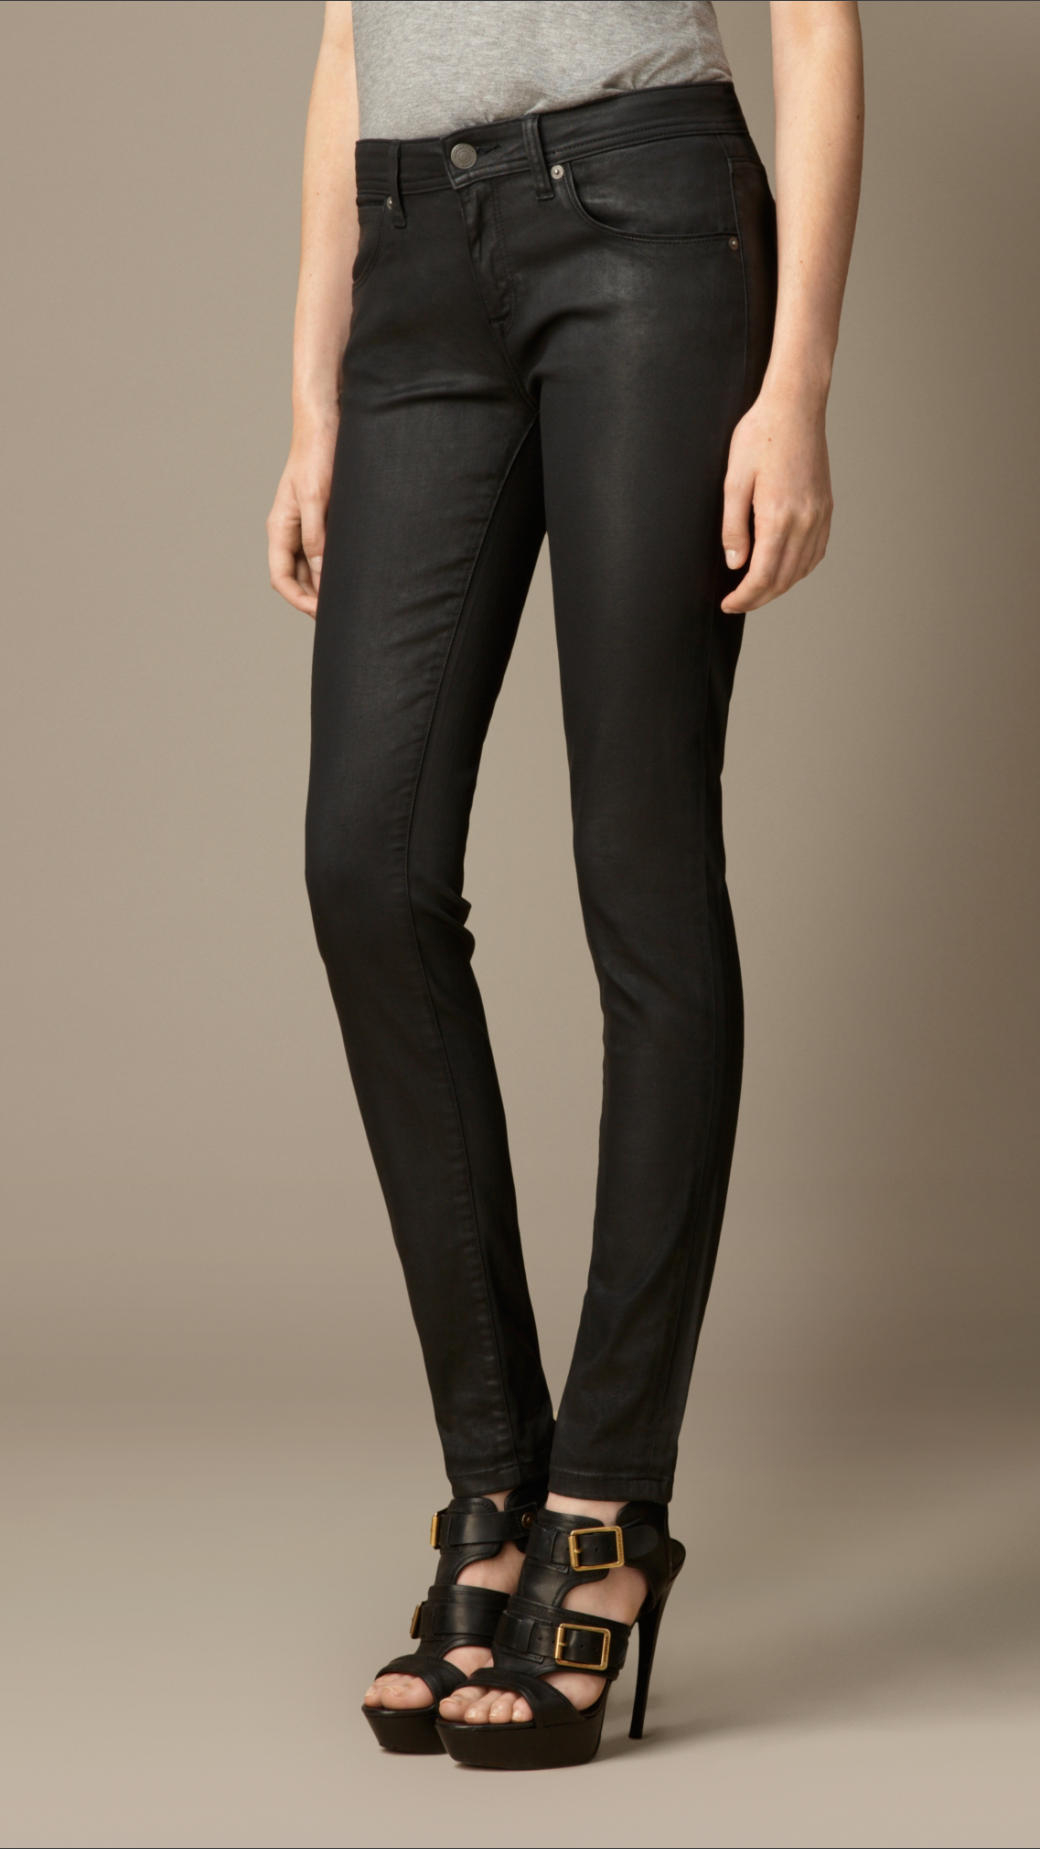 Lyst - Burberry Skinny Fit Low-Rise Wax Coated Jeans In Black-7146